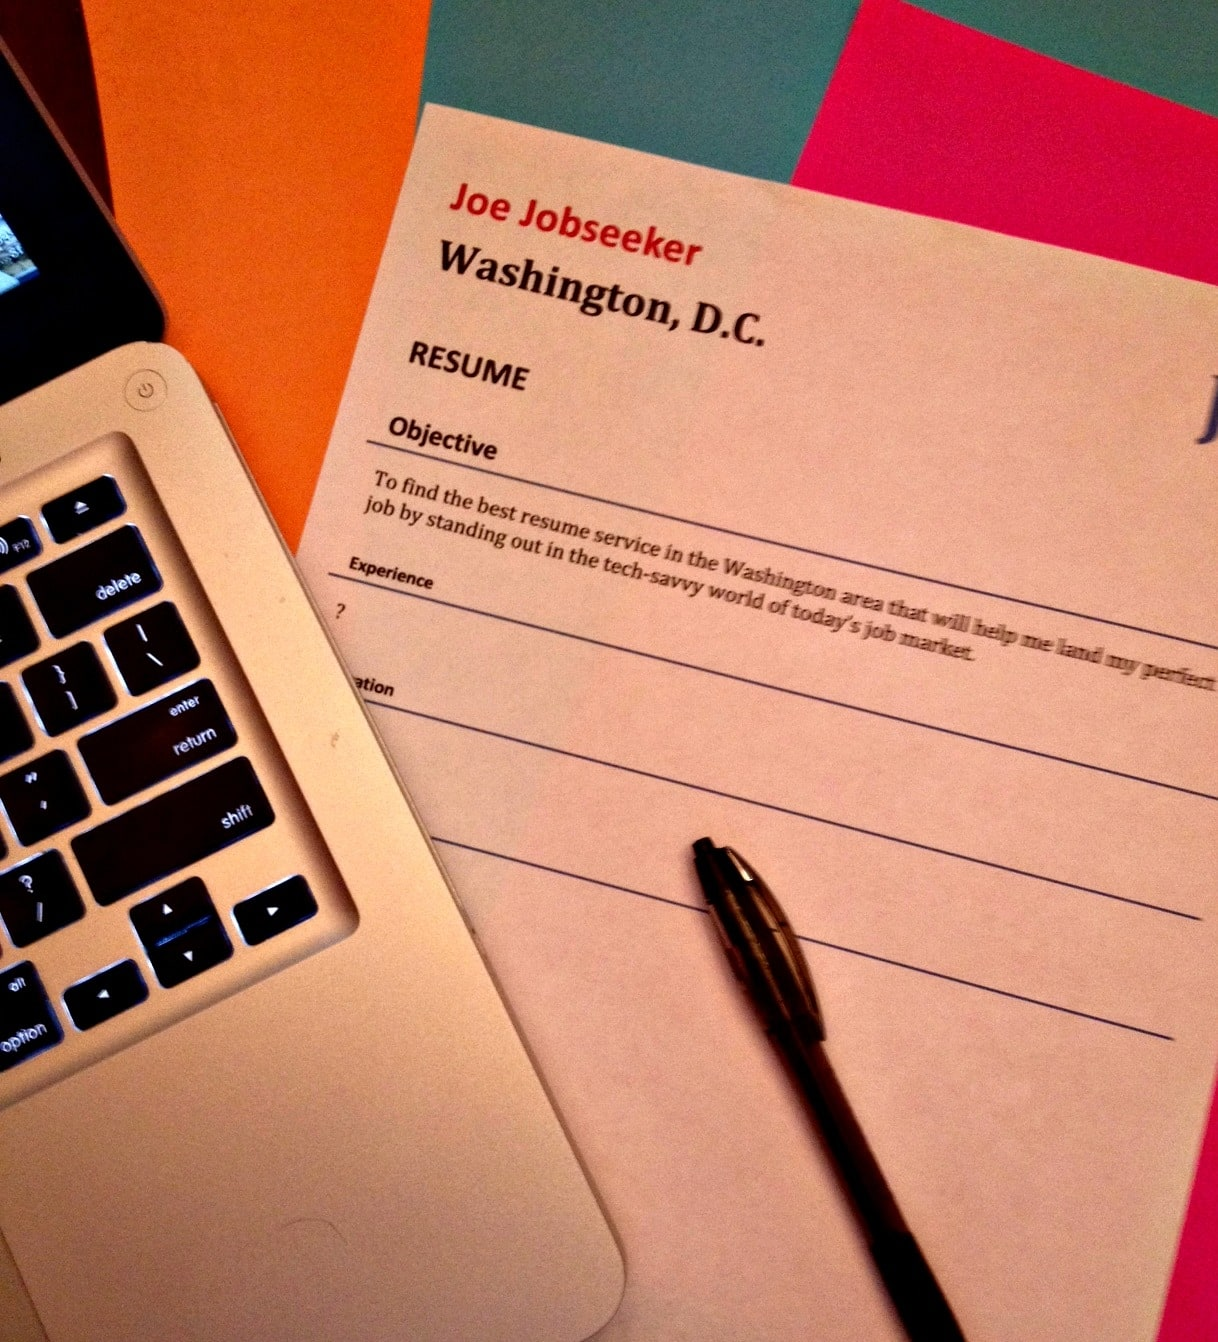 D.C. resume (Photo by Jason Hargraves)